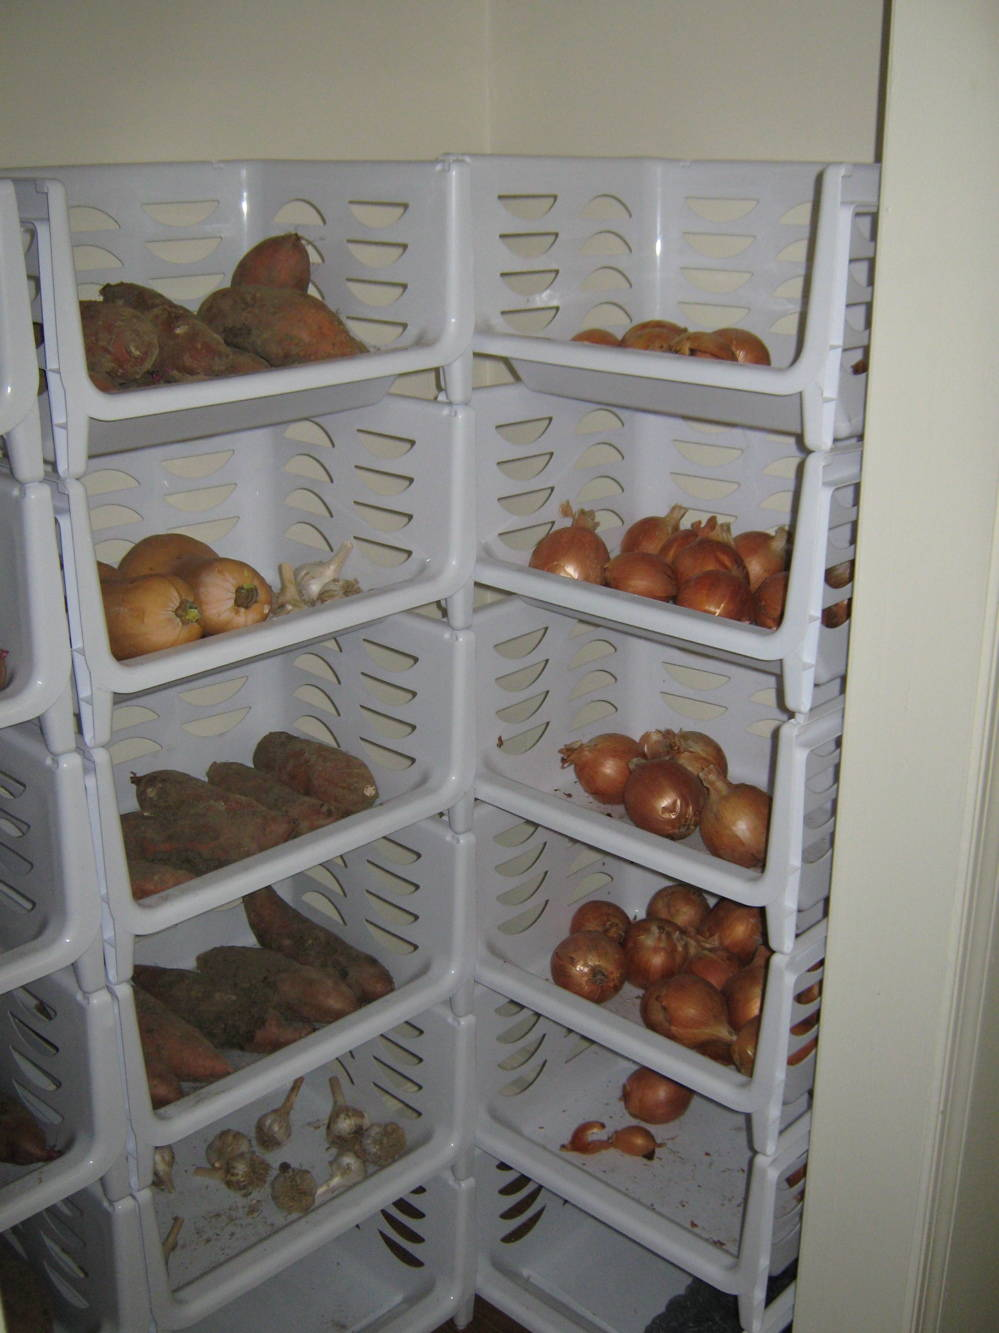 Vegetables stored in closet